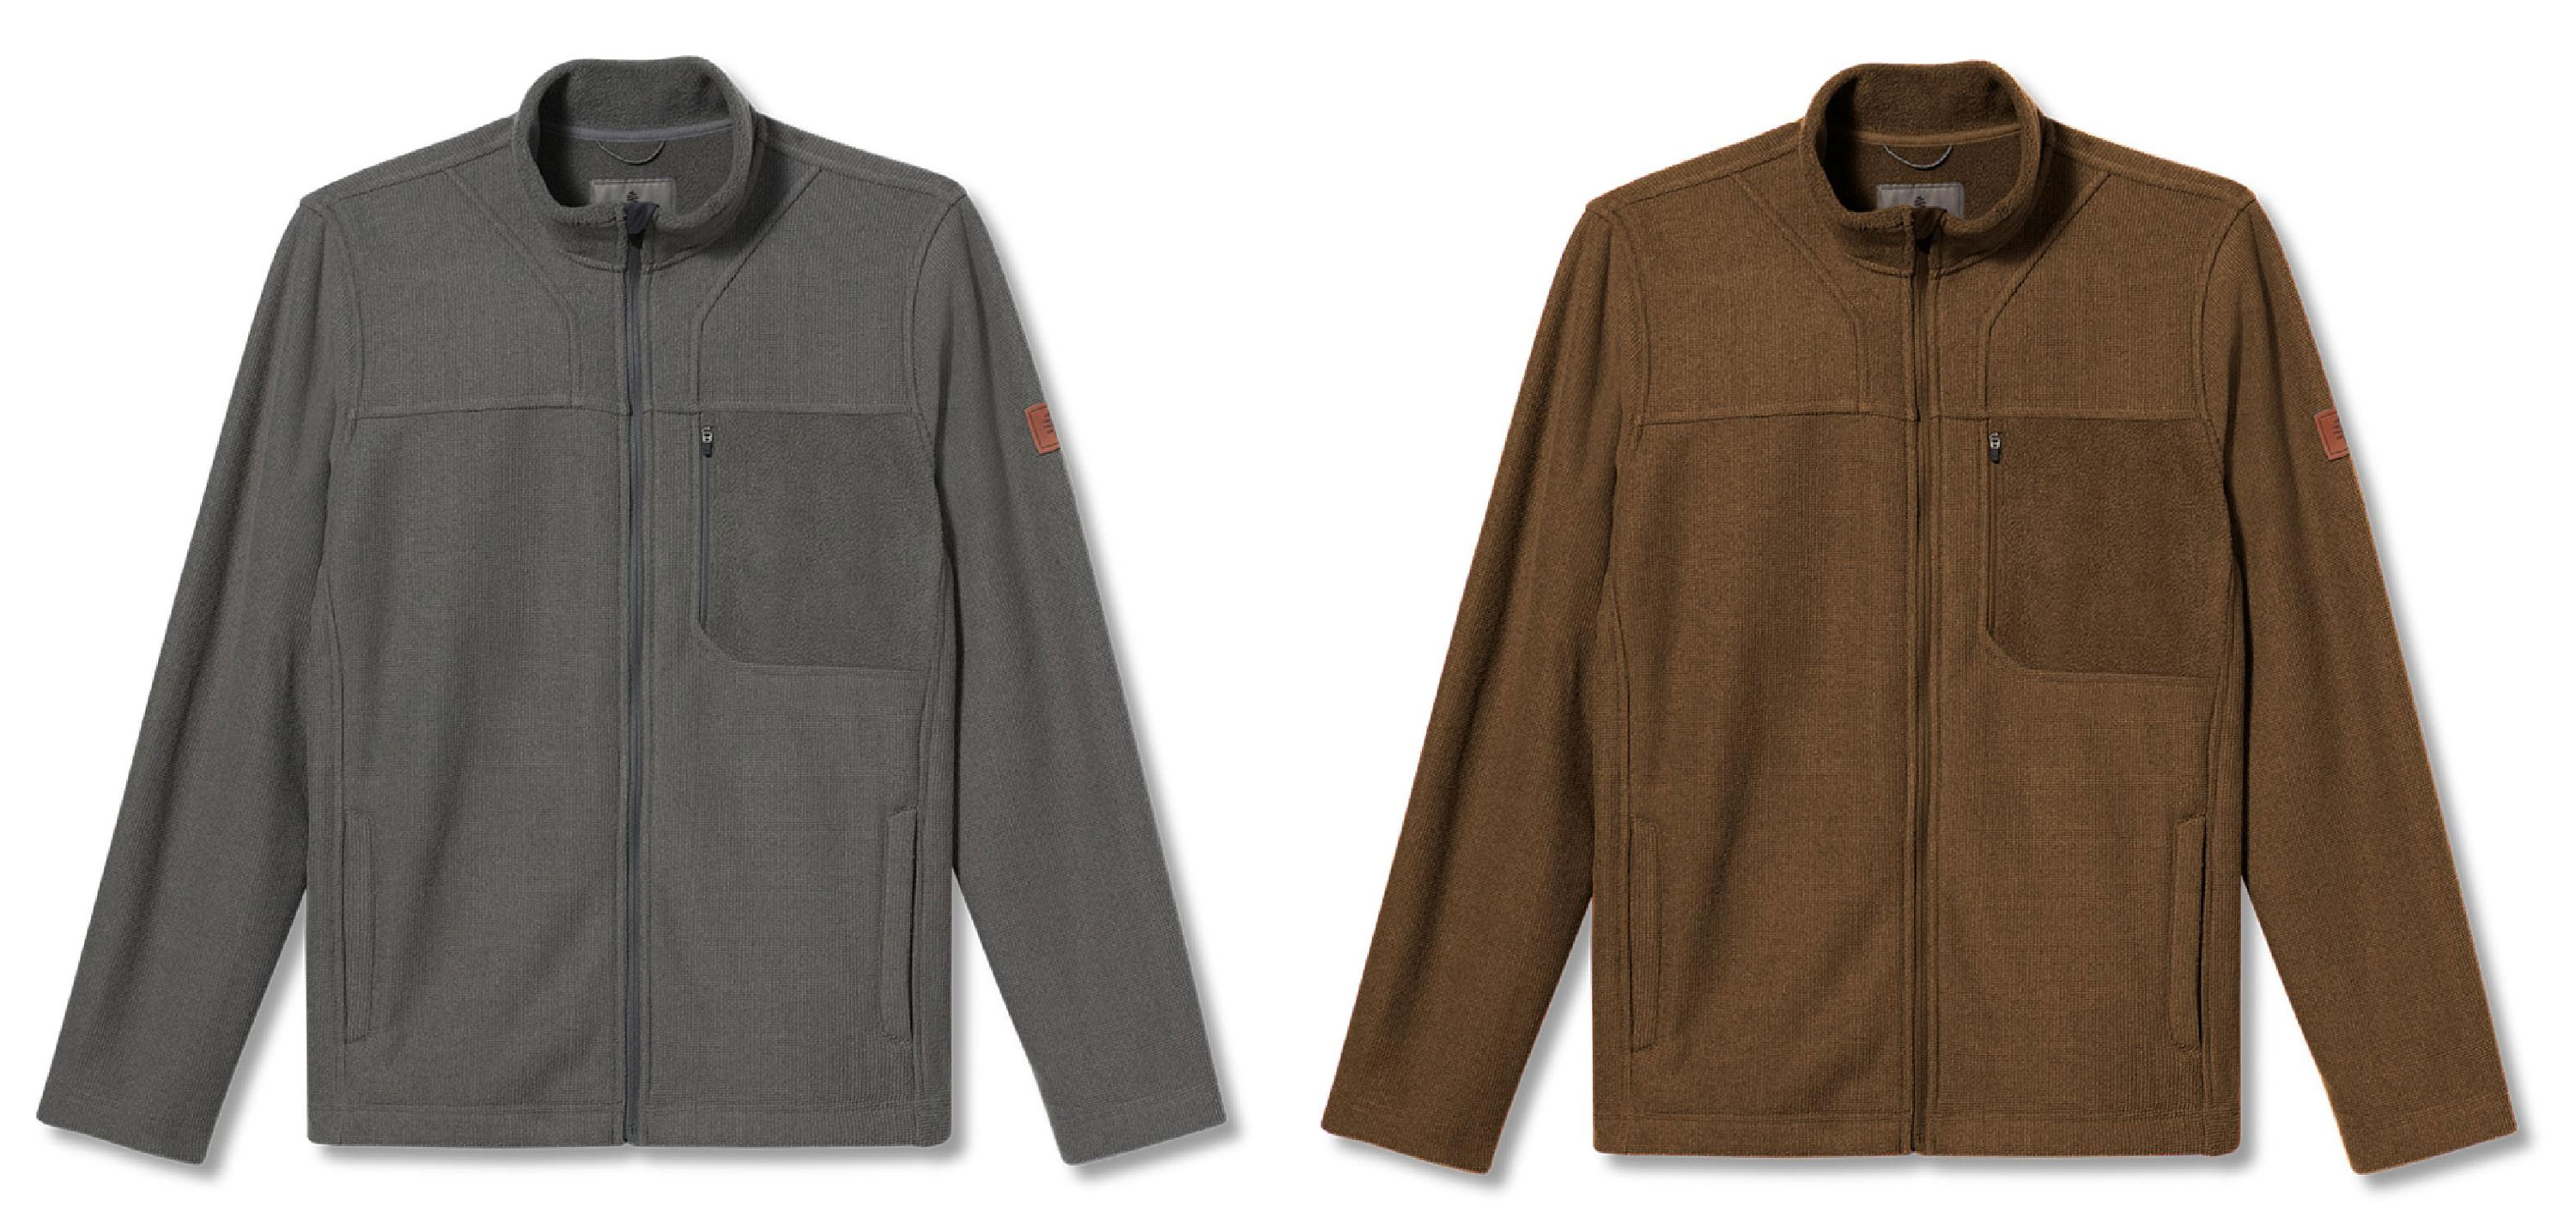 royal robbins connection grid jacket